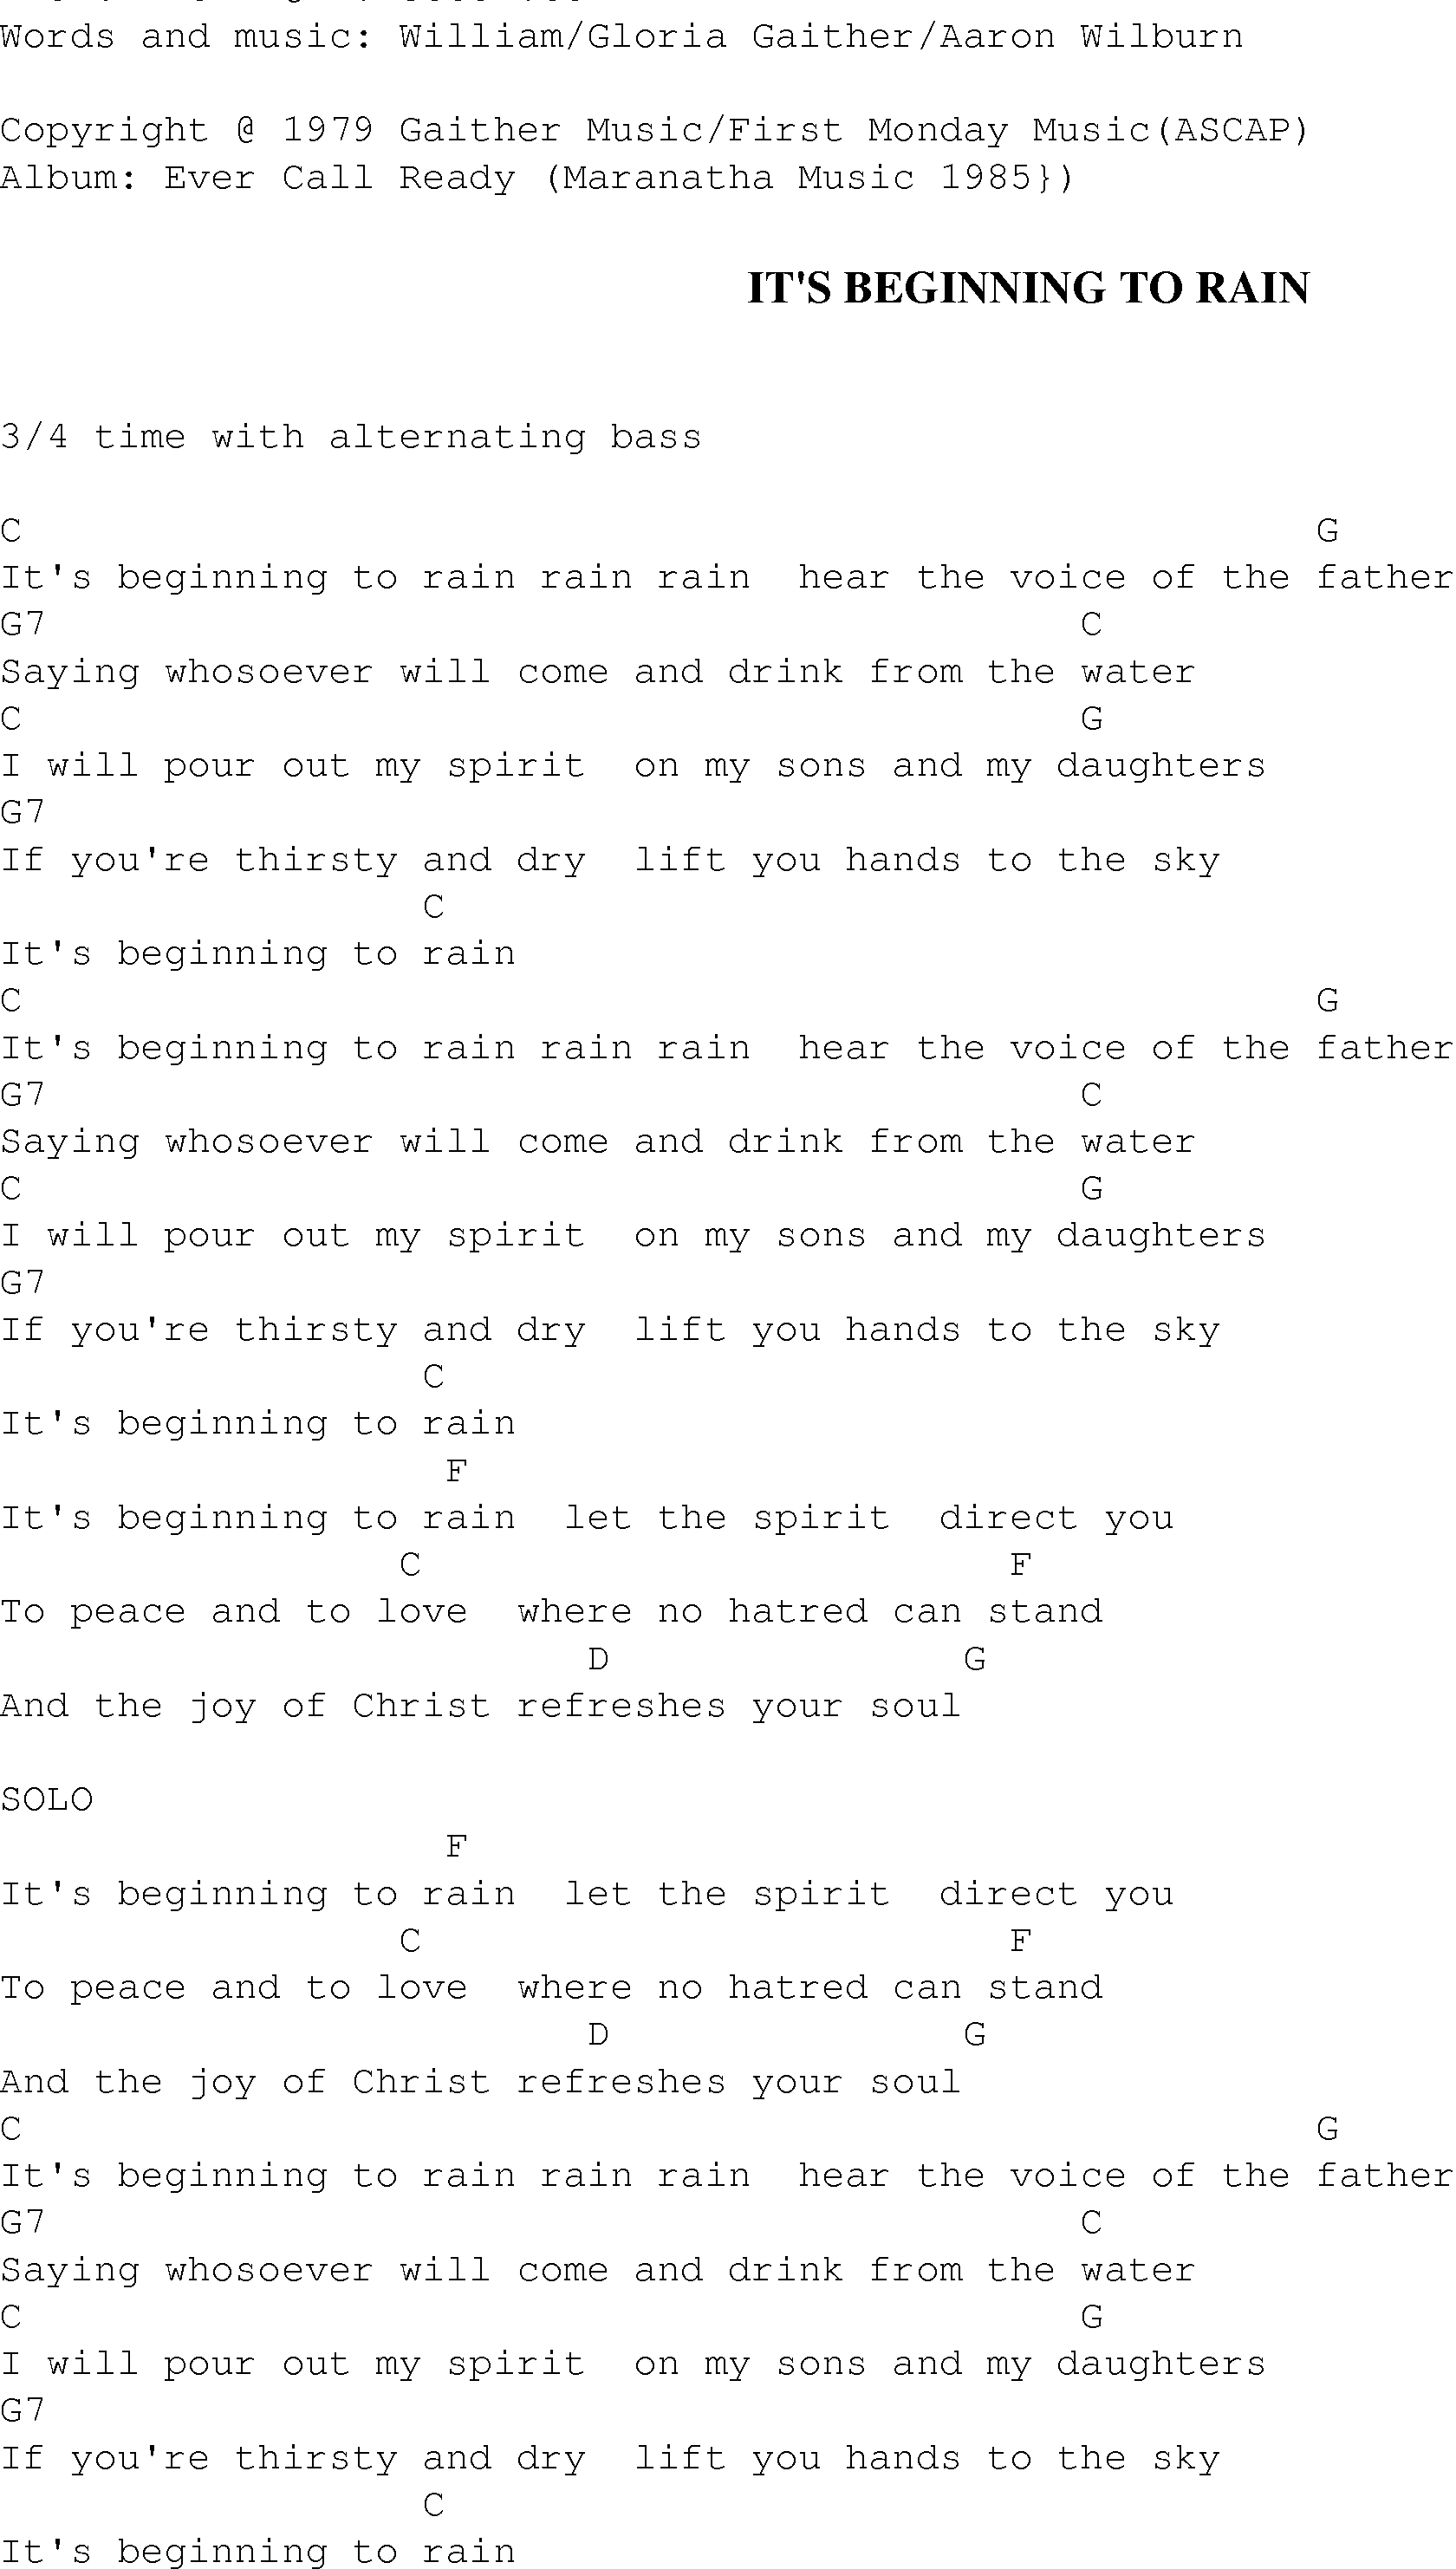 Its beginning to rain christian gospel song lyrics and chords gospel song itsbeginningtorain lyrics and chords hexwebz Image collections